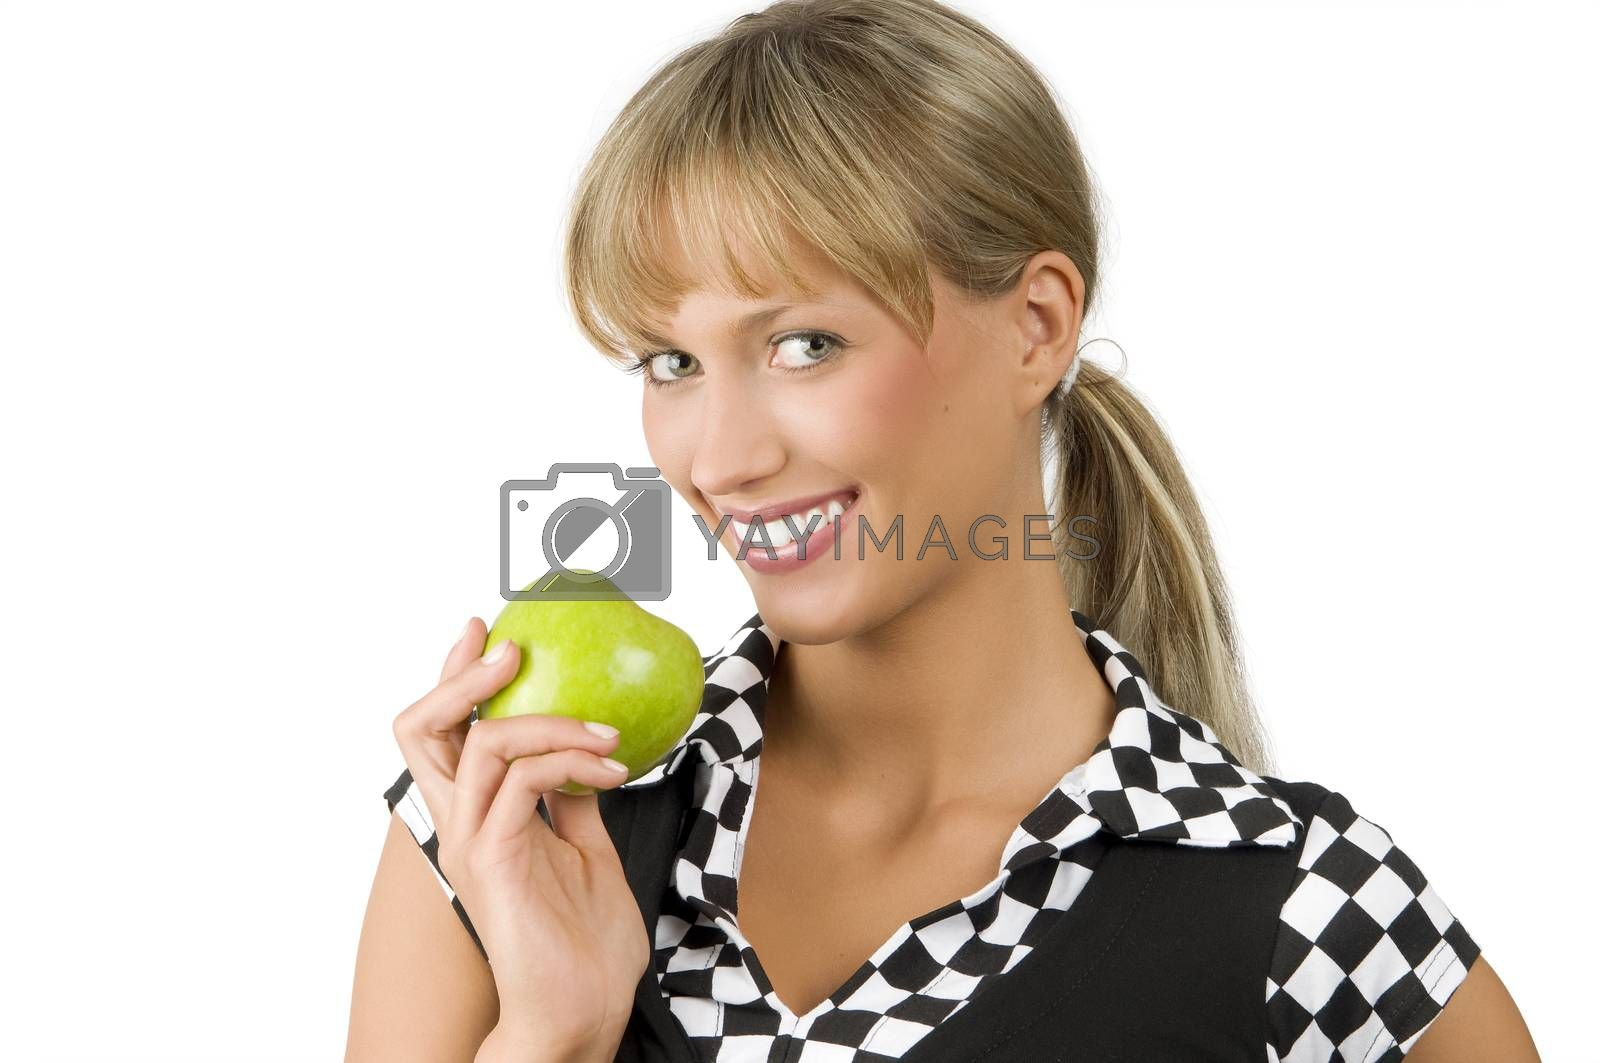 Royalty free image of green apple and smile by fotoCD